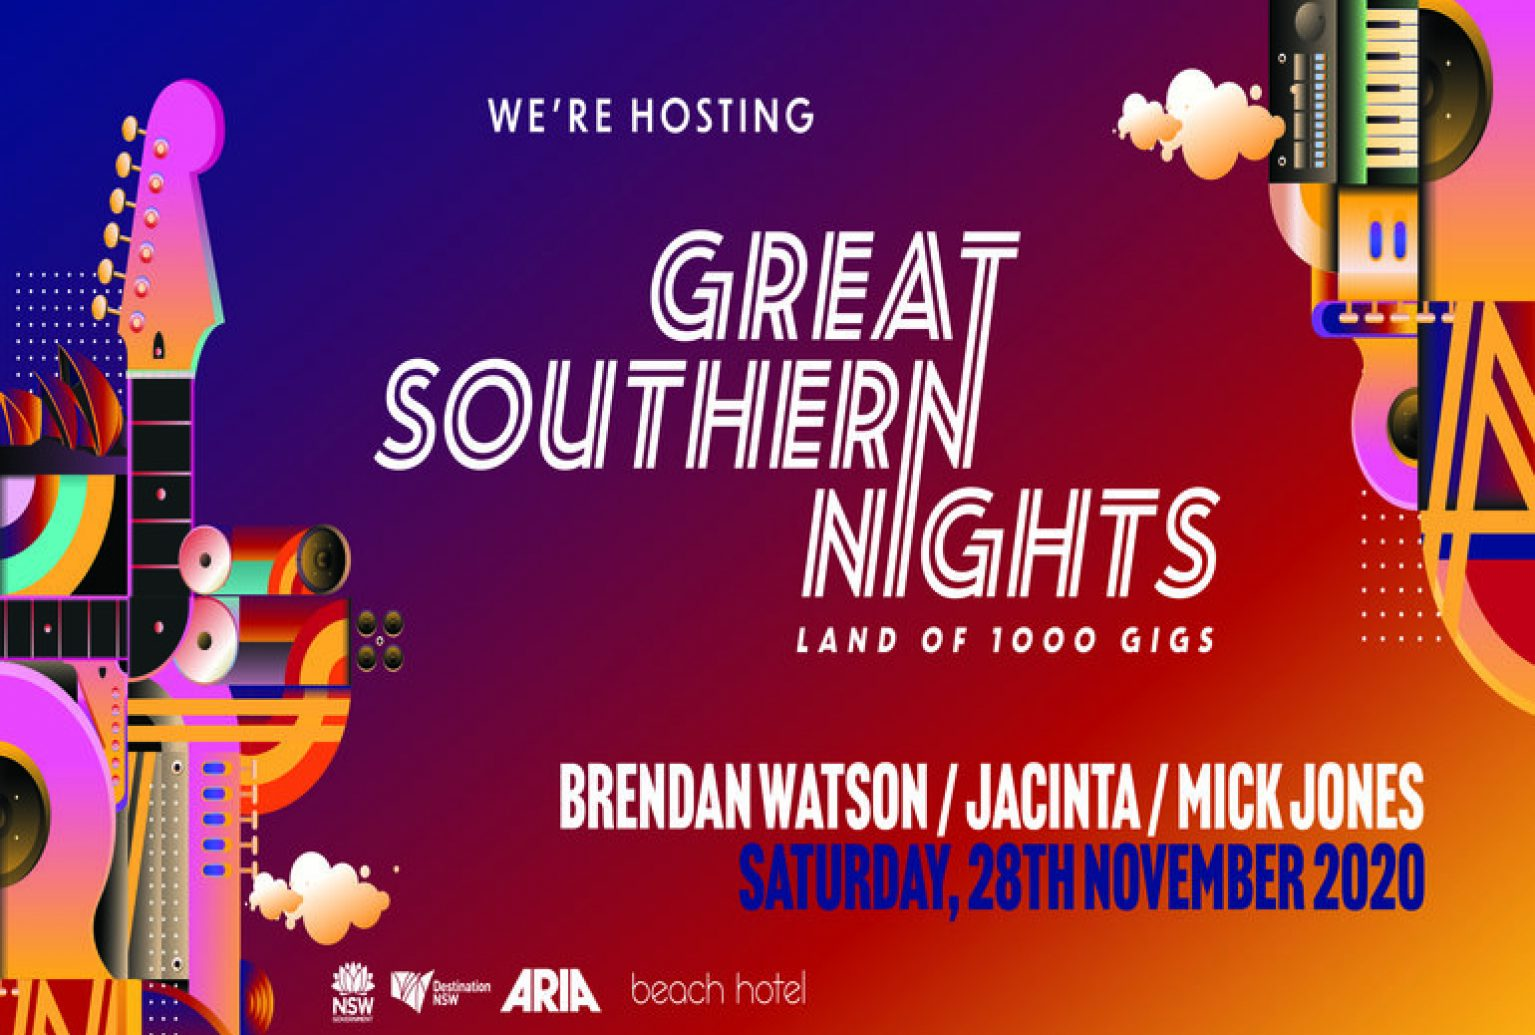 Great Southern Nights